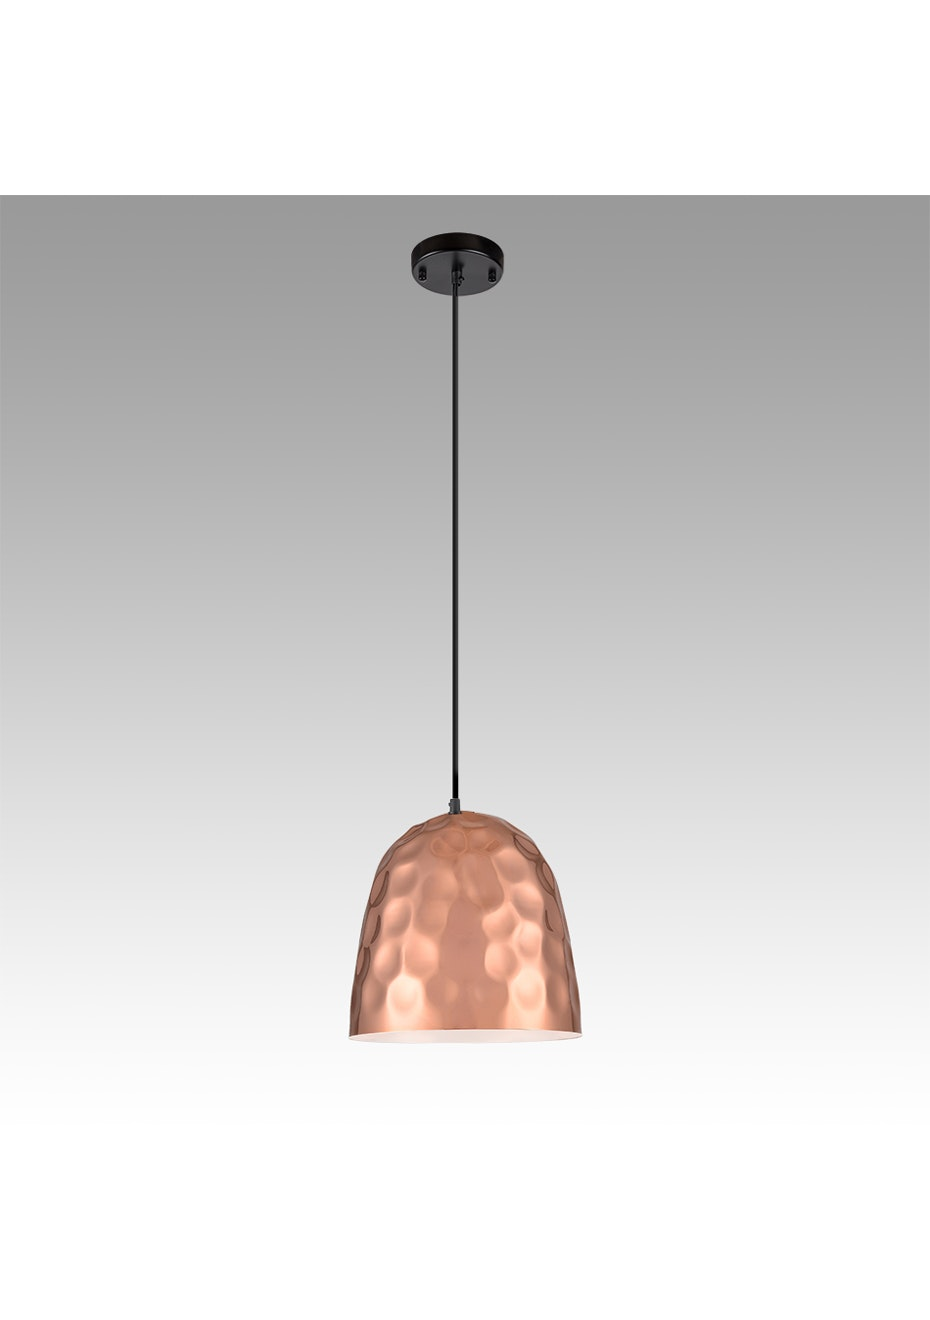 Noozi Beaten Series Pendant - Tall 200